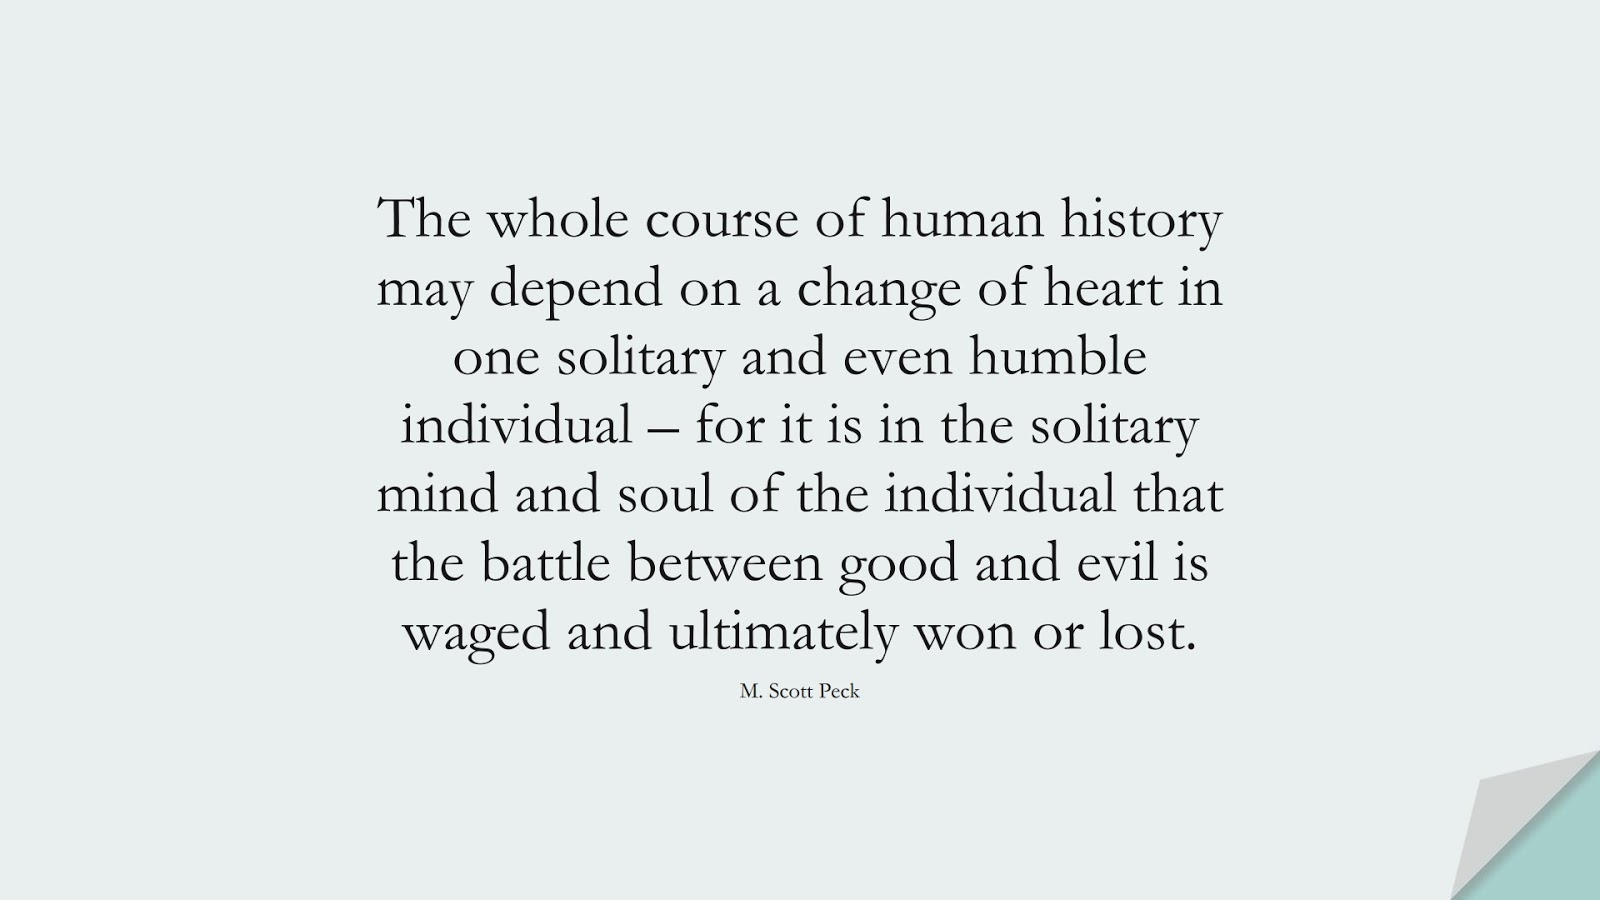 The whole course of human history may depend on a change of heart in one solitary and even humble individual – for it is in the solitary mind and soul of the individual that the battle between good and evil is waged and ultimately won or lost. (M. Scott Peck);  #ChangeQuotes